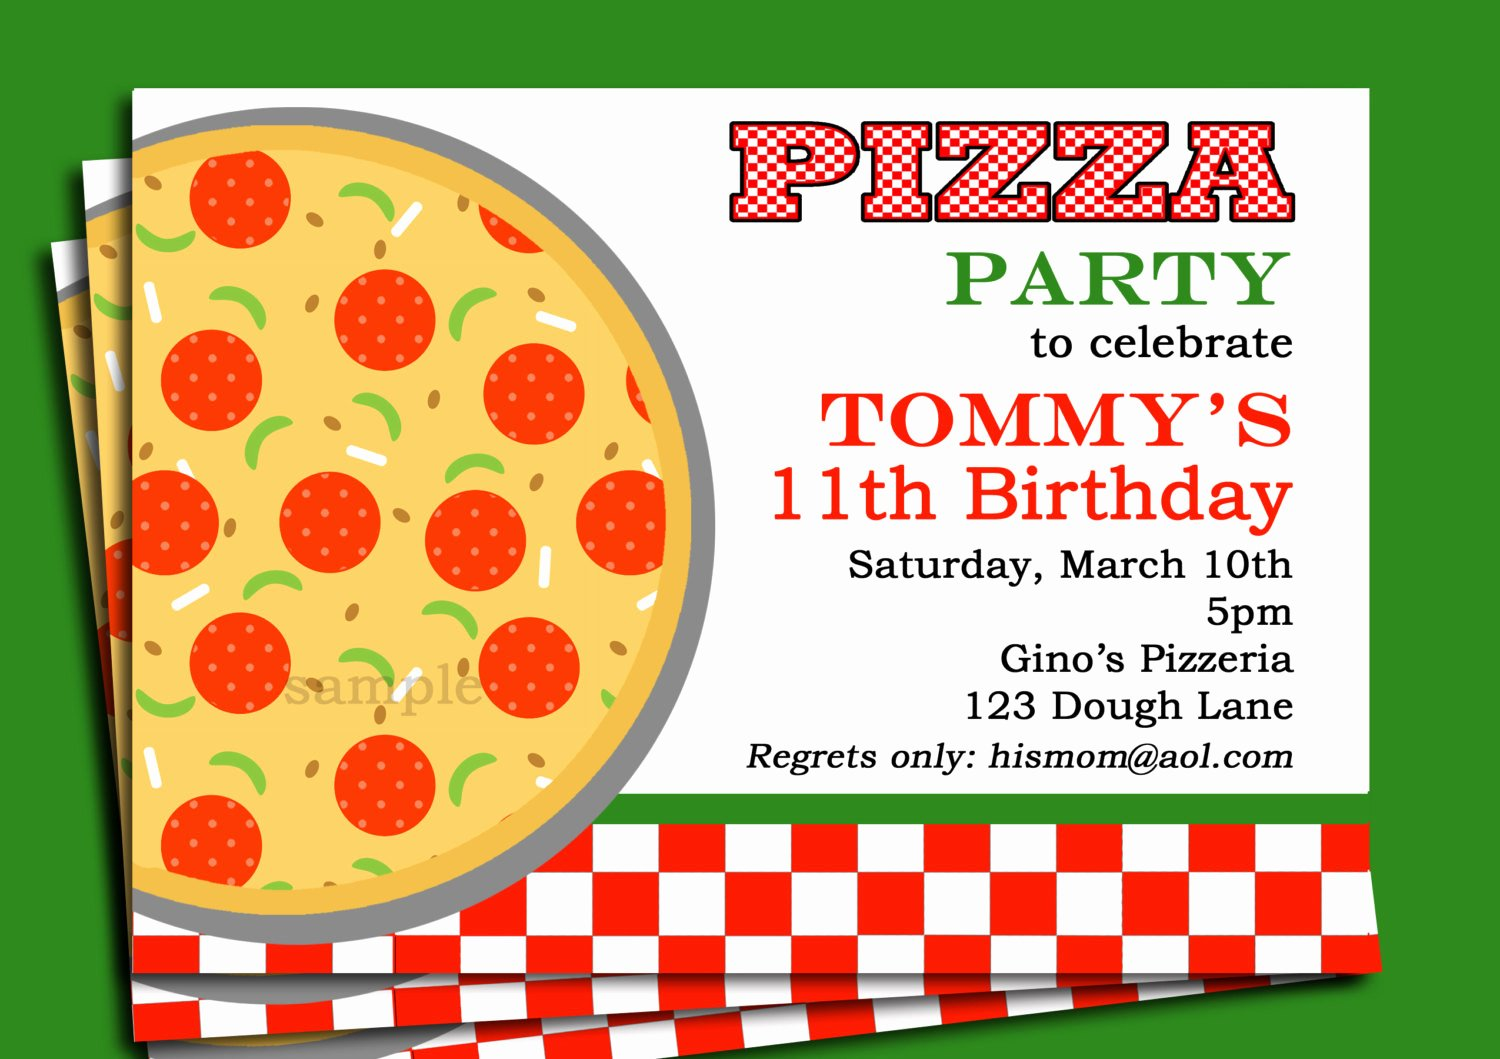 Pizza Party Invitations Template Beautiful Pizza Party Invitation Pizza Party Invitation as Awesome